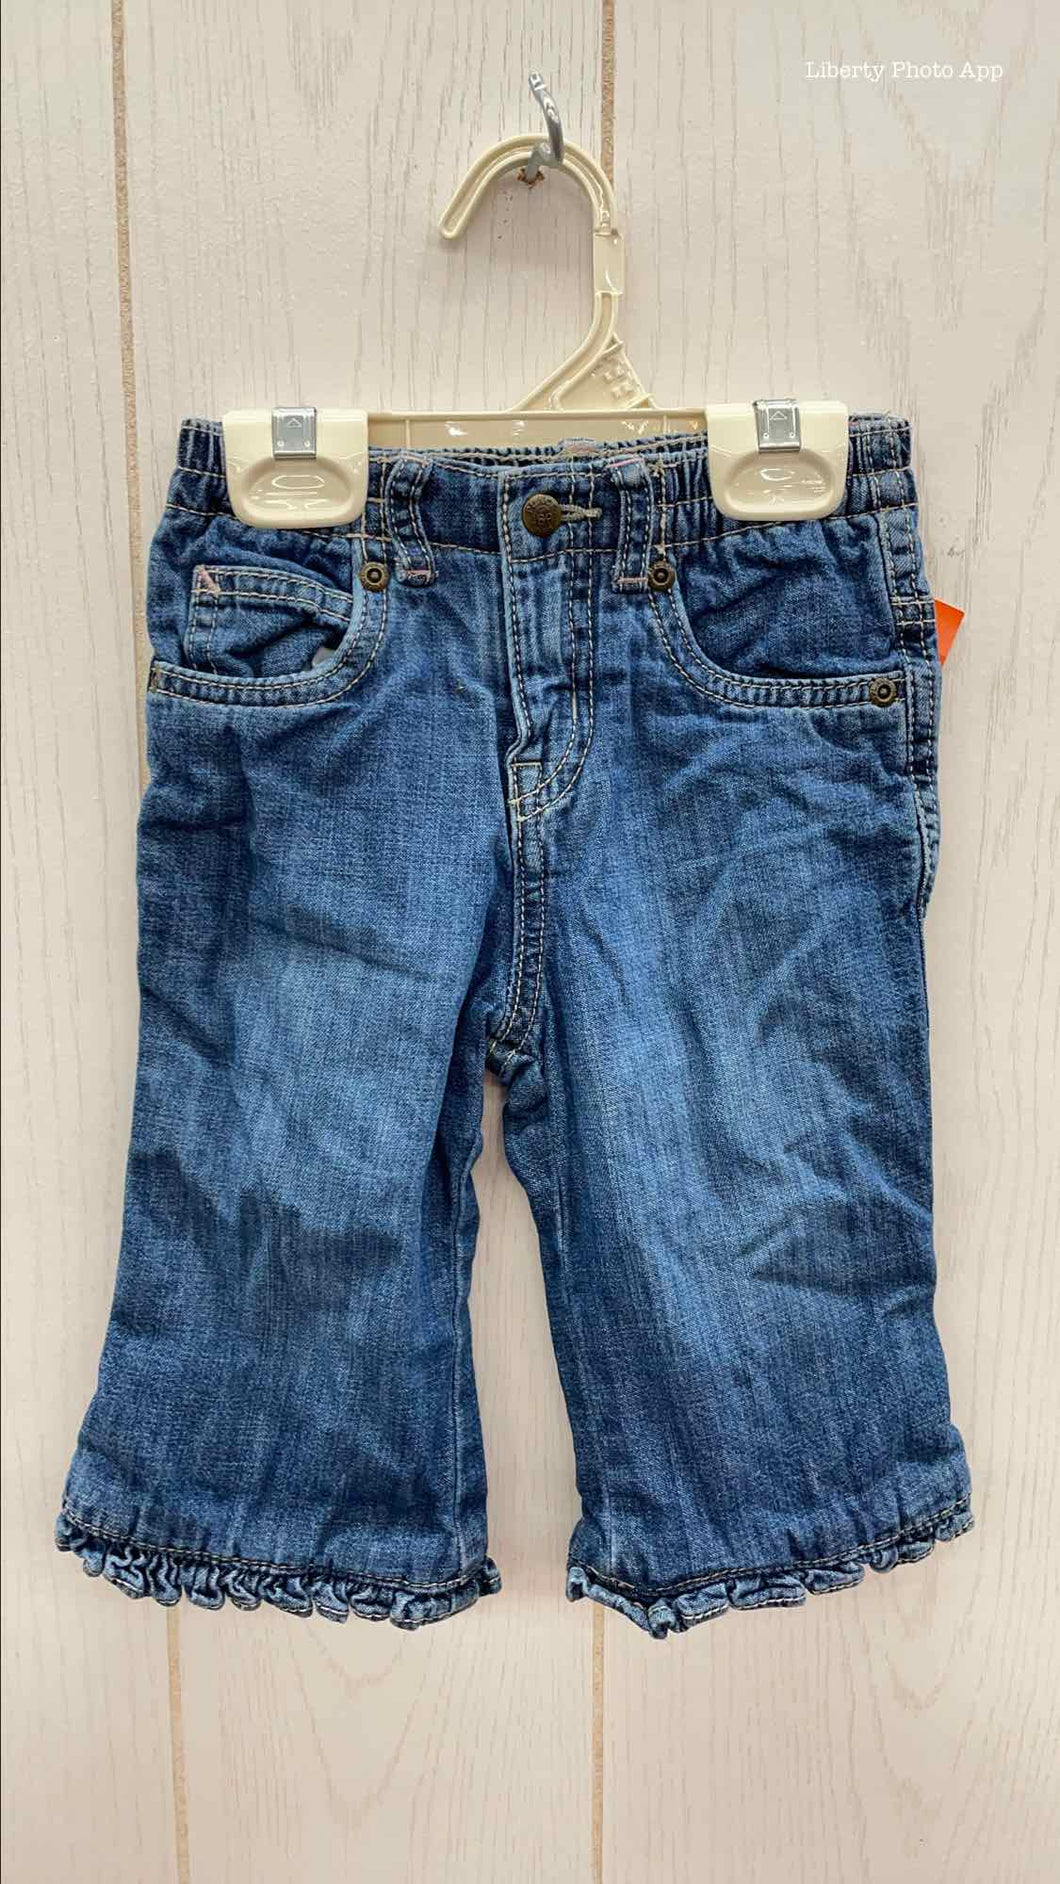 Childrens Place Girls Size 12 Months Jeans